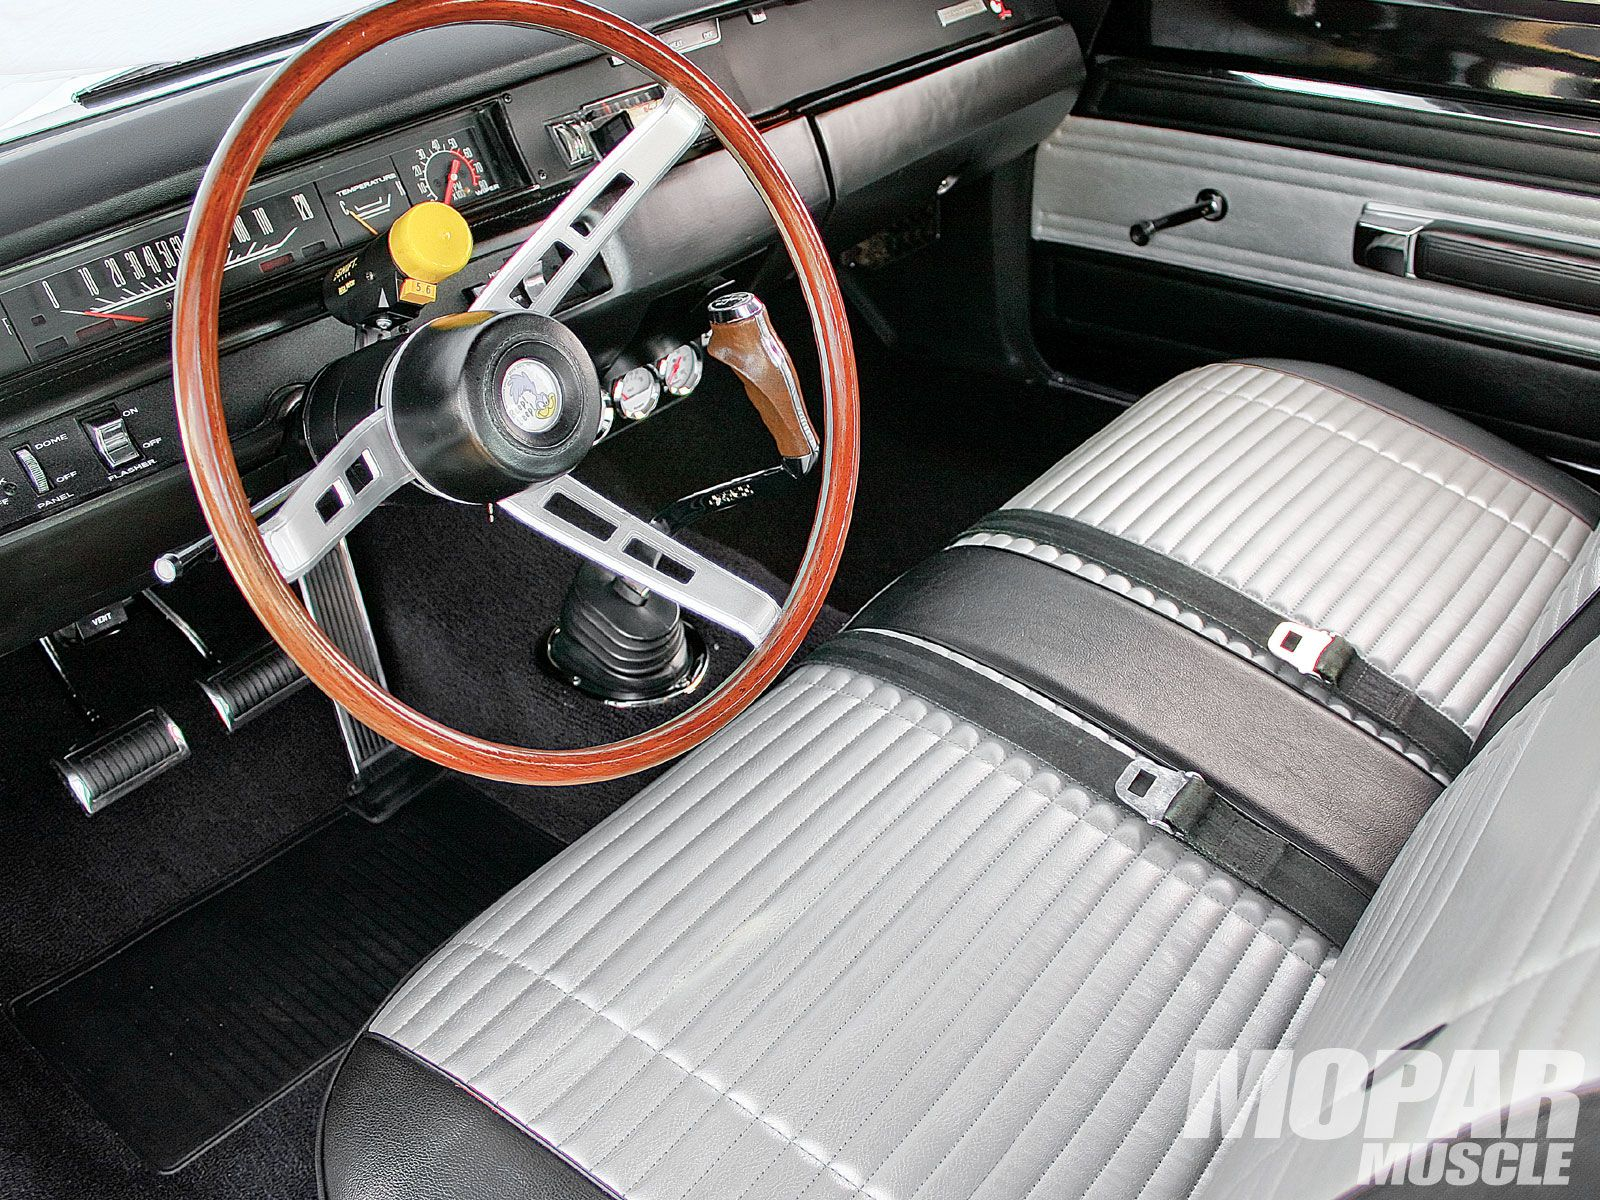 Mopp_1008_06_o 1969_plymouth_road_runner interior jpg 1600 1200